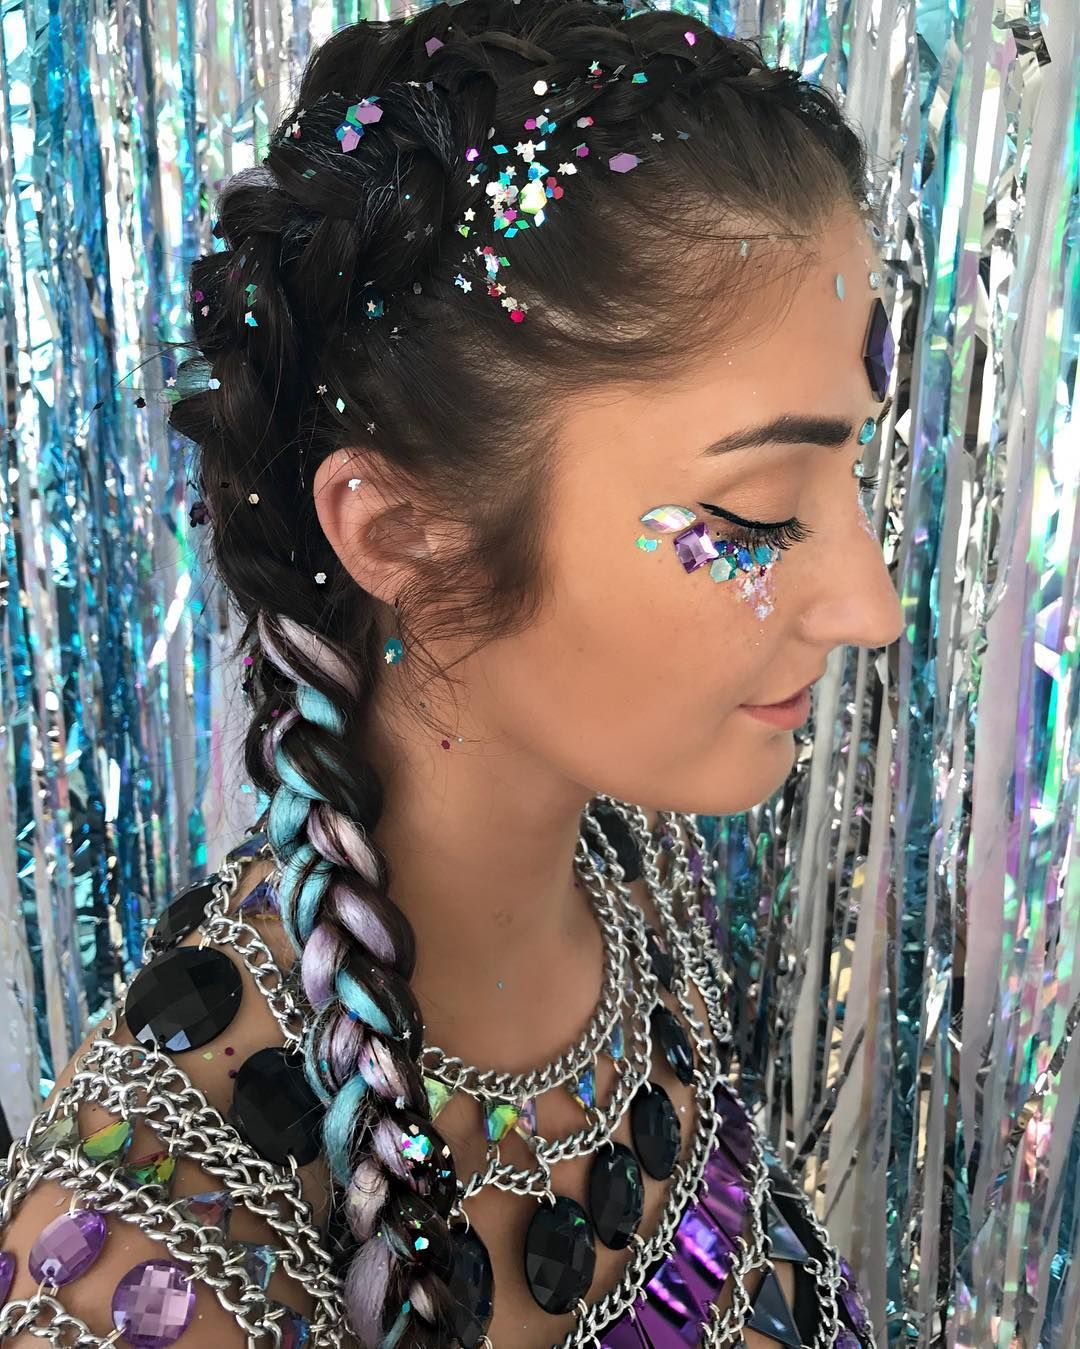 Watch Coachella Beauty: Must-Have Hair Accessories For the Avid MusicFan video